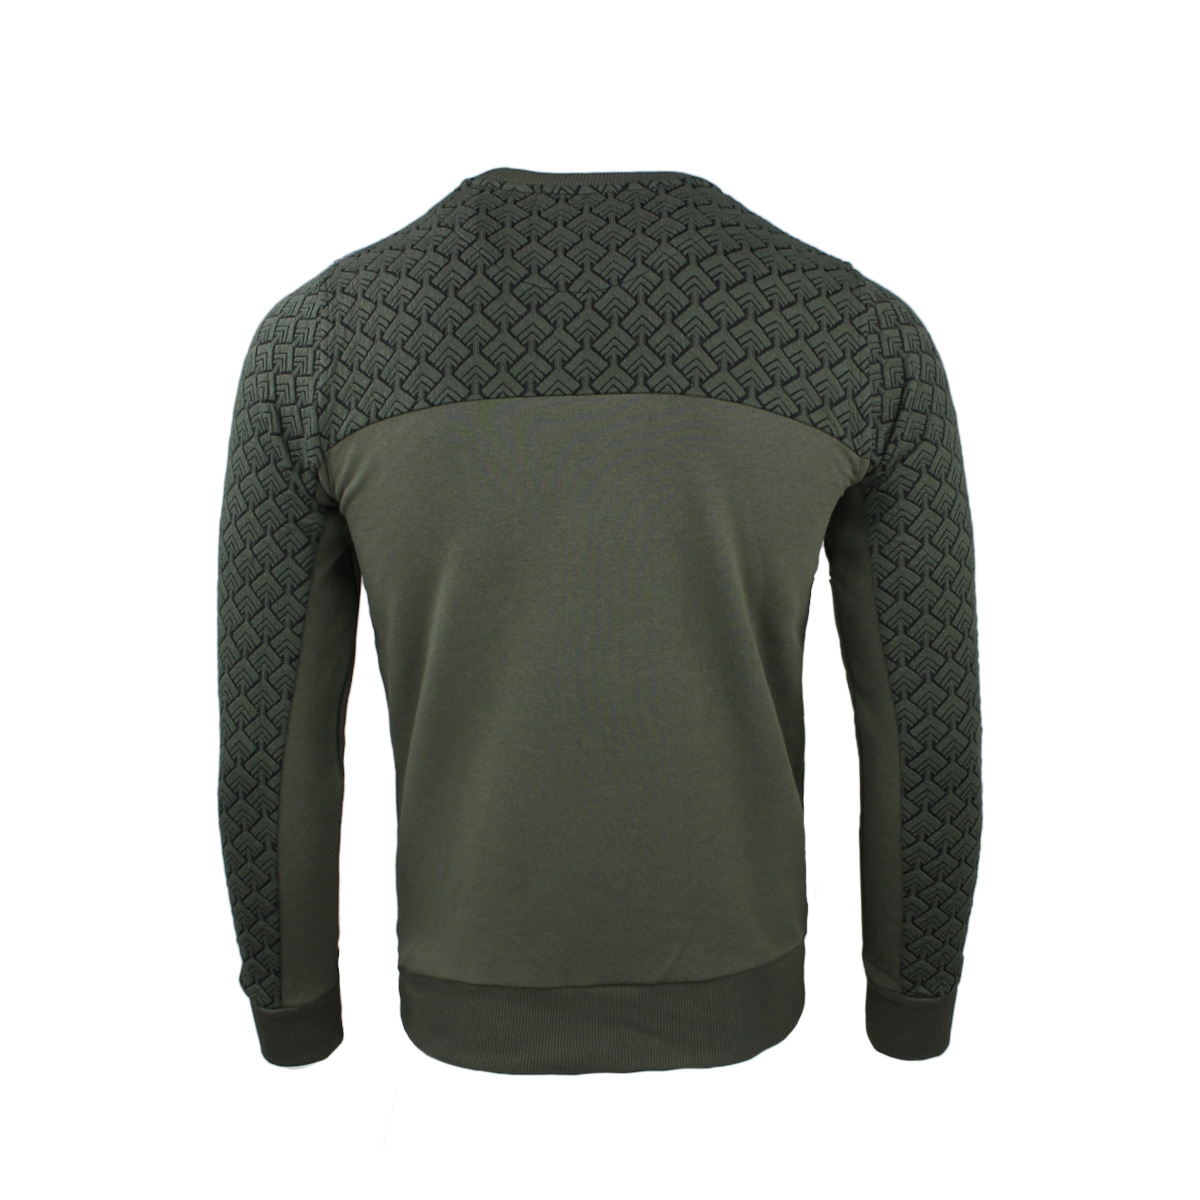 sweater 77086 gabbiano sweater green